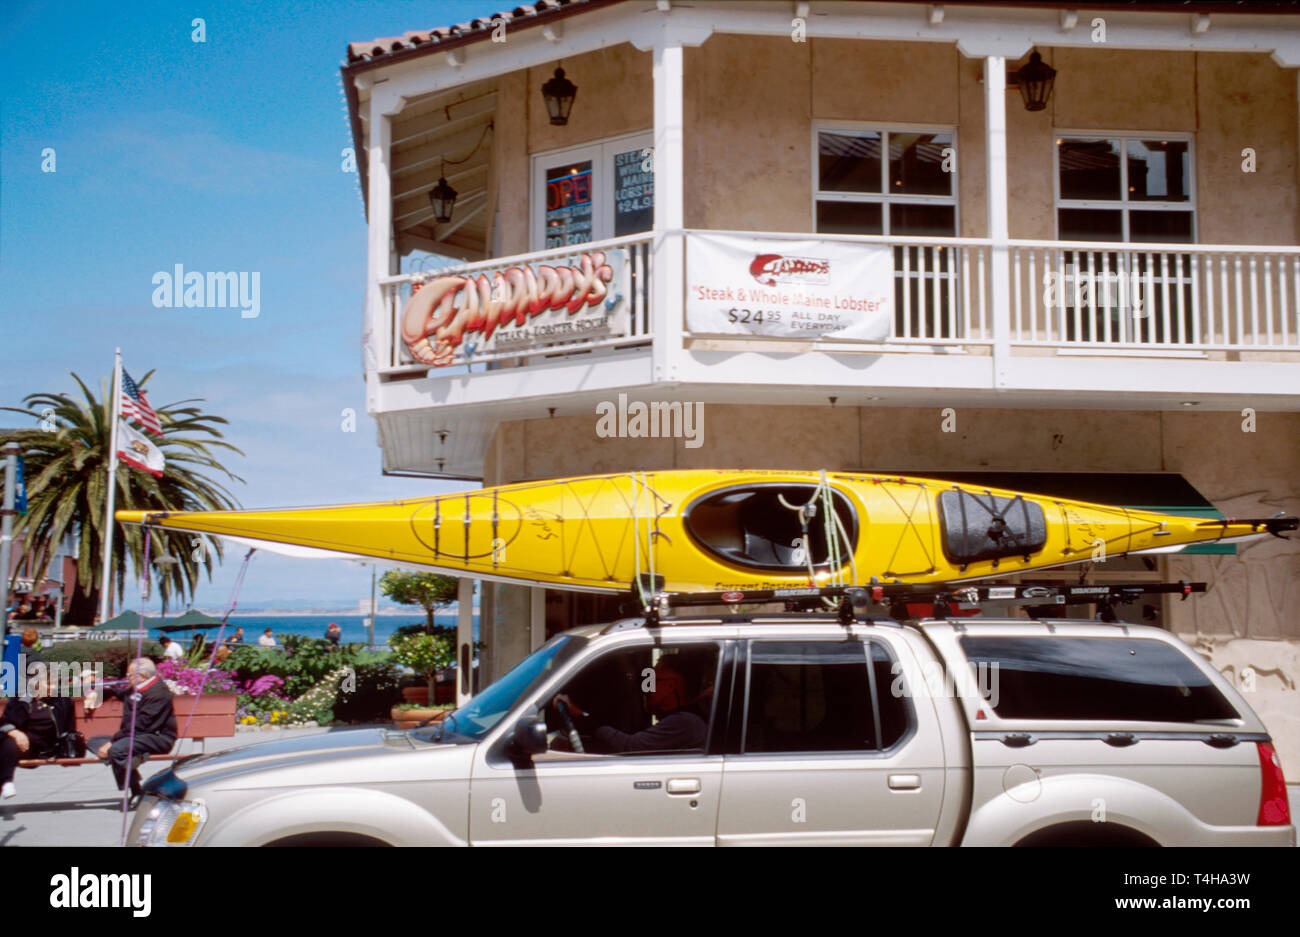 California Monterey Cannery Row Steinbeck Plaza stores kayak on vehicle - Stock Image